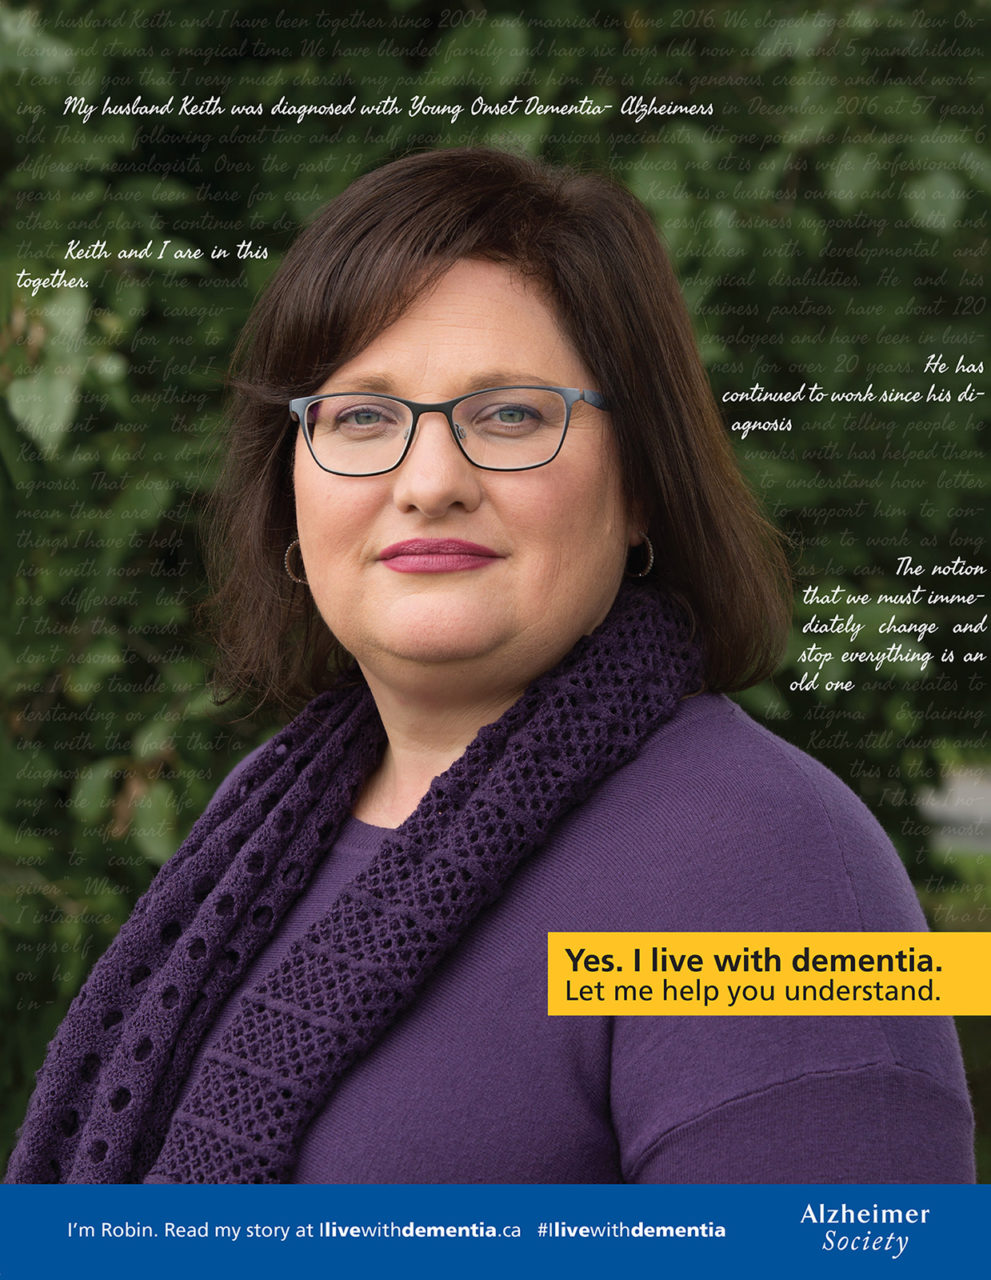 Advertising photographer Matthew Liteplo produced this image as part of a national advertising campaign for Alzheimers Society of Canada. This image had broad usage, like print magazine, online ads, and social media content uses.